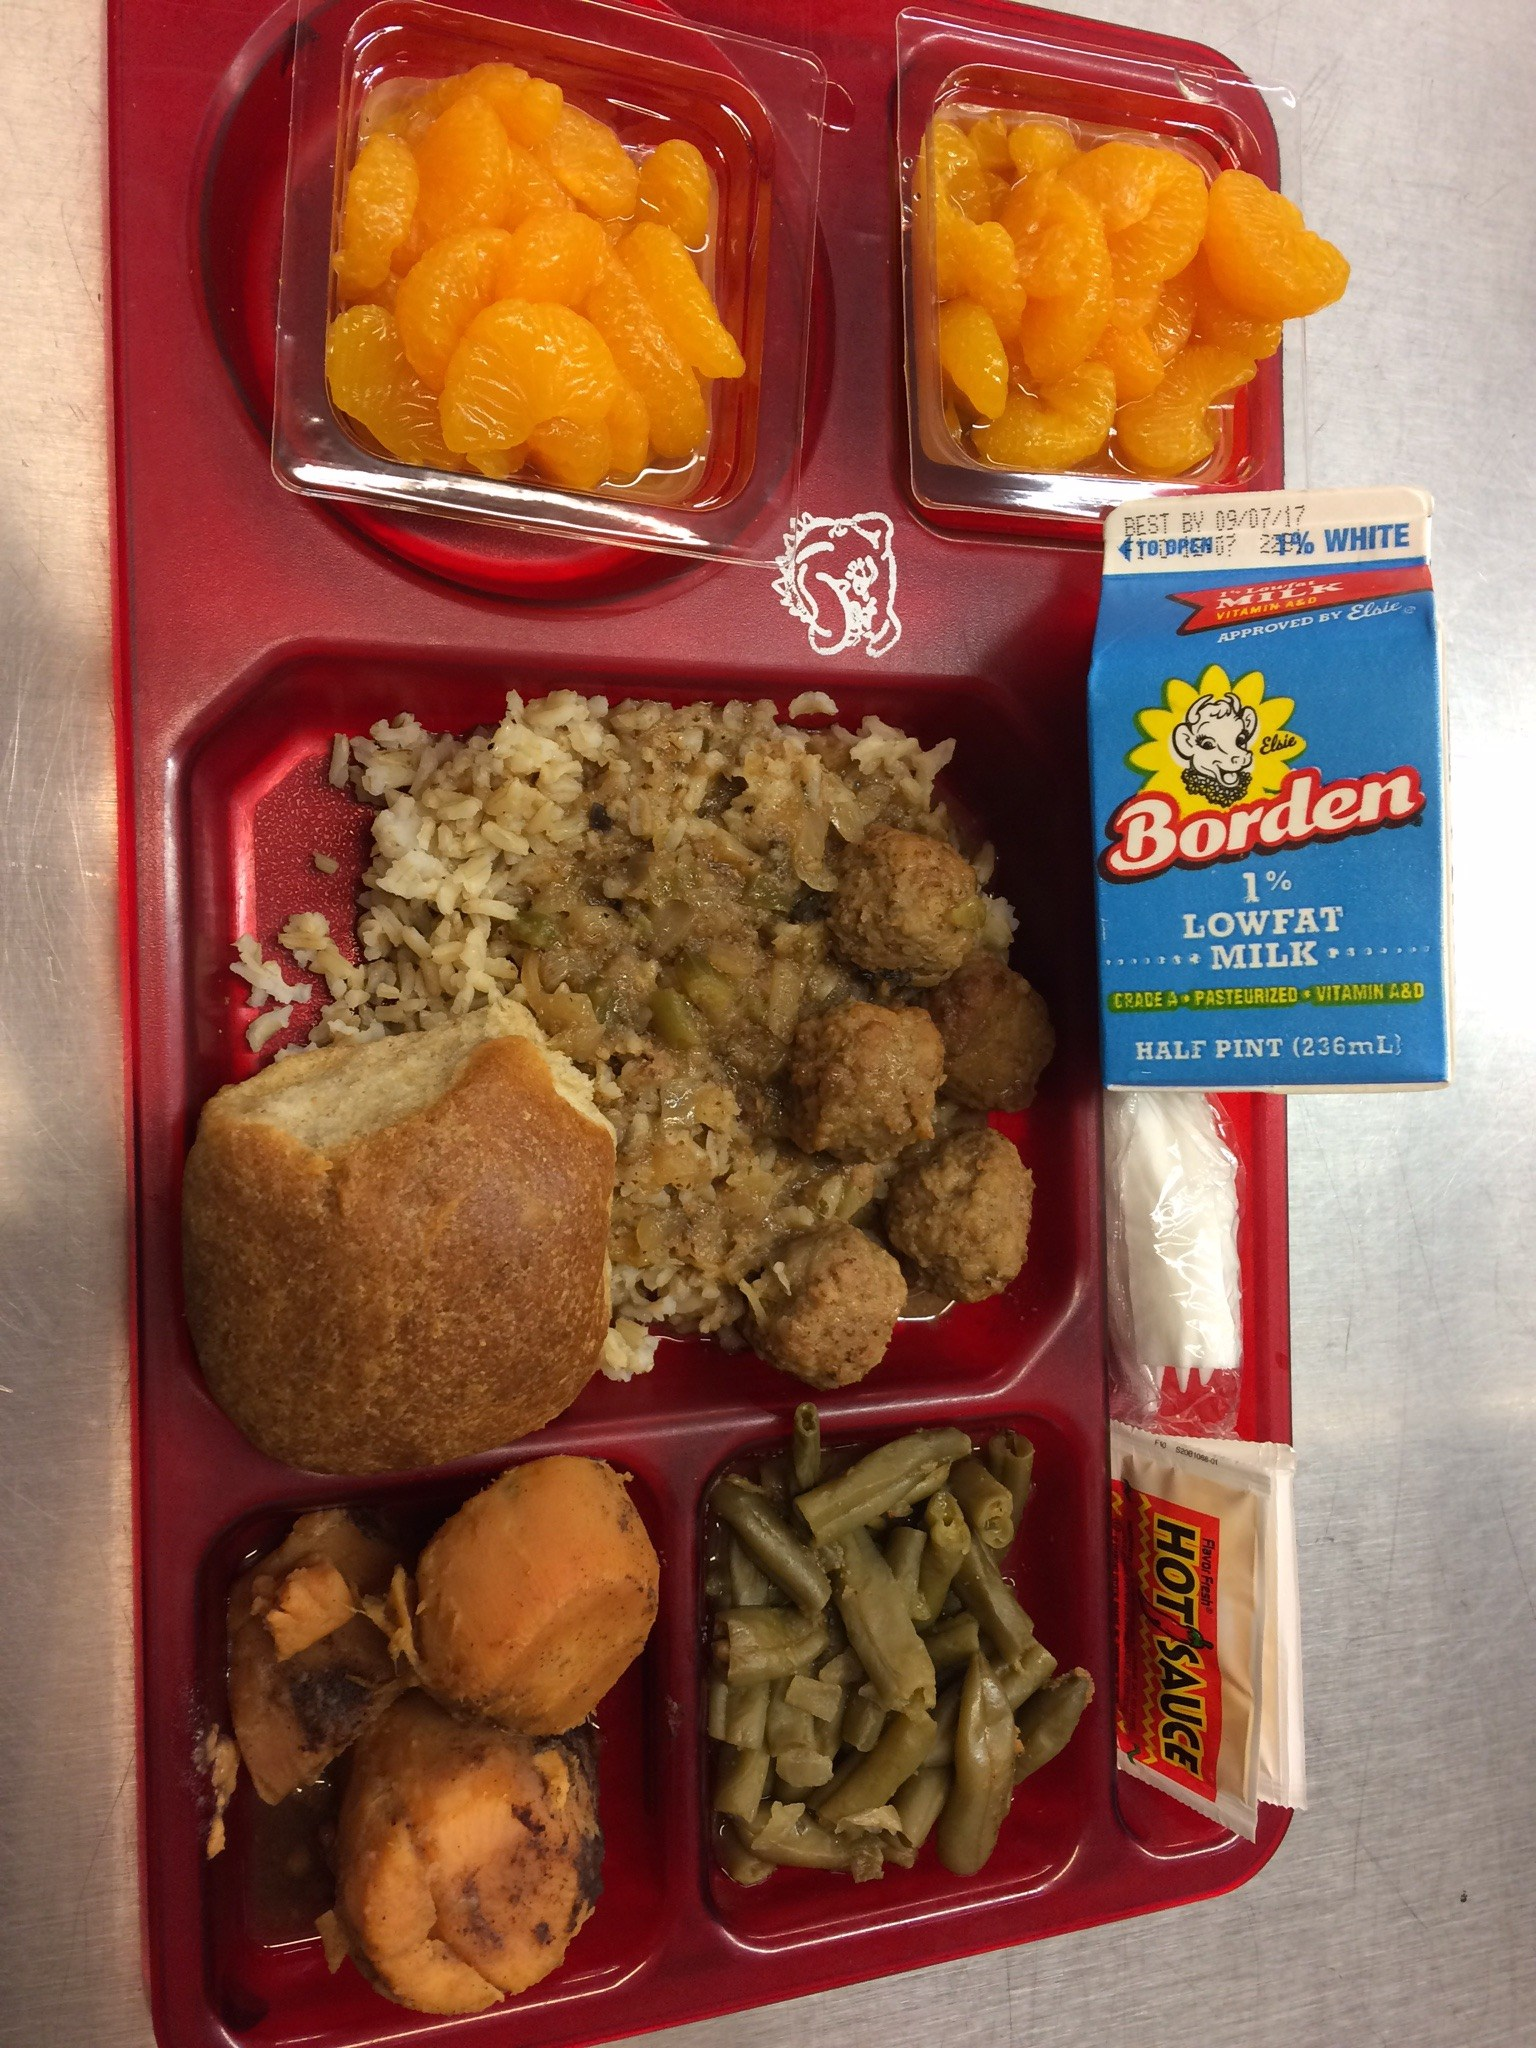 Meatball lunch tray